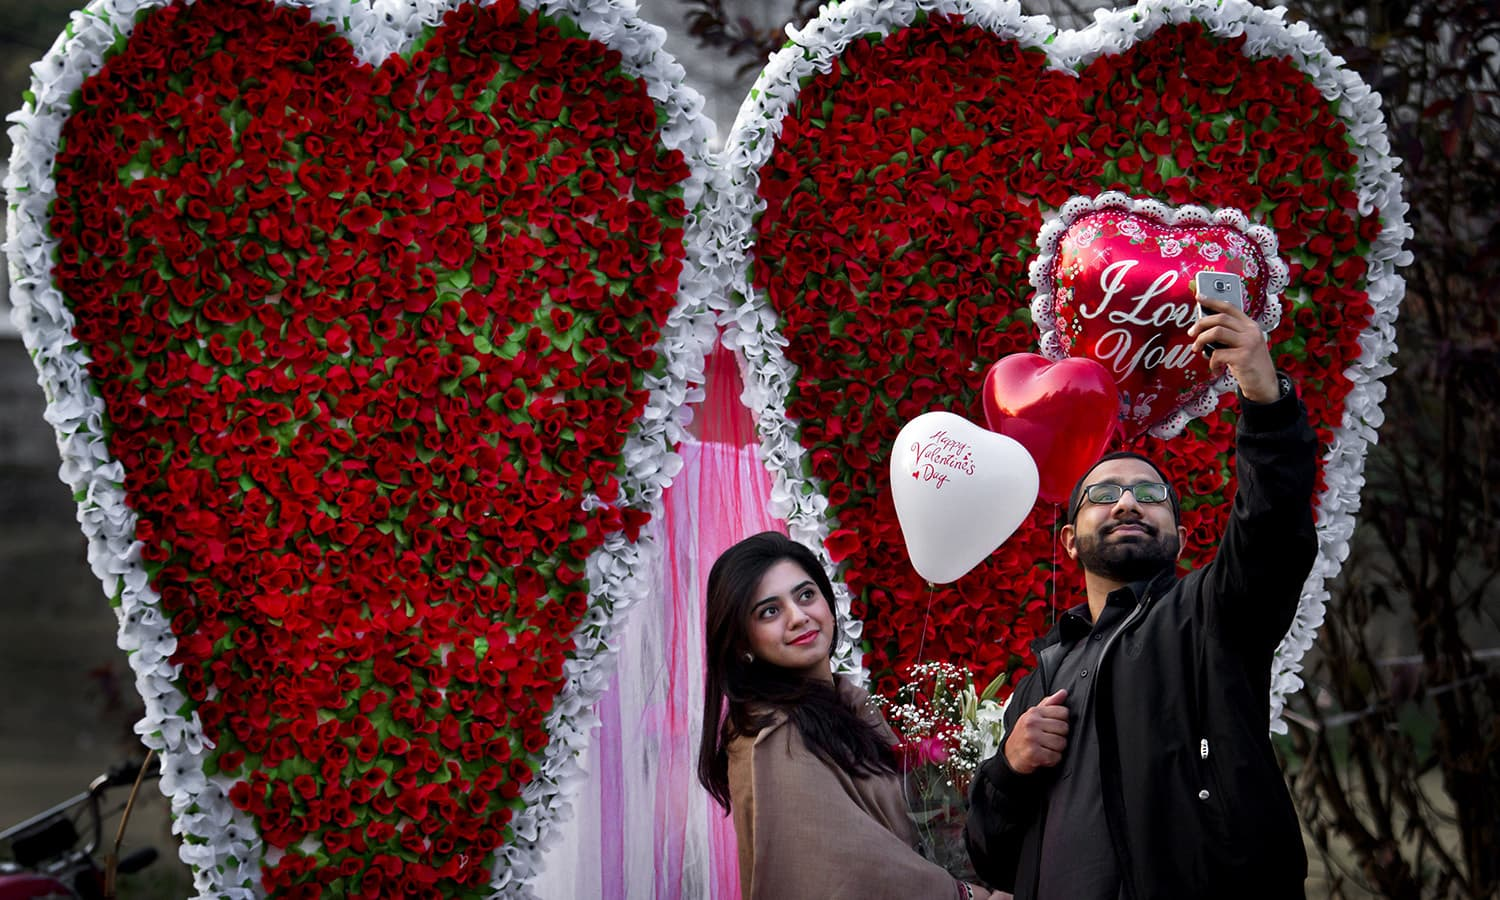 A couple take 'selfie' in front of a giant heart-shaped bouquet display by a vendor to attract customers on Valentine's Day, Sunday.─AP